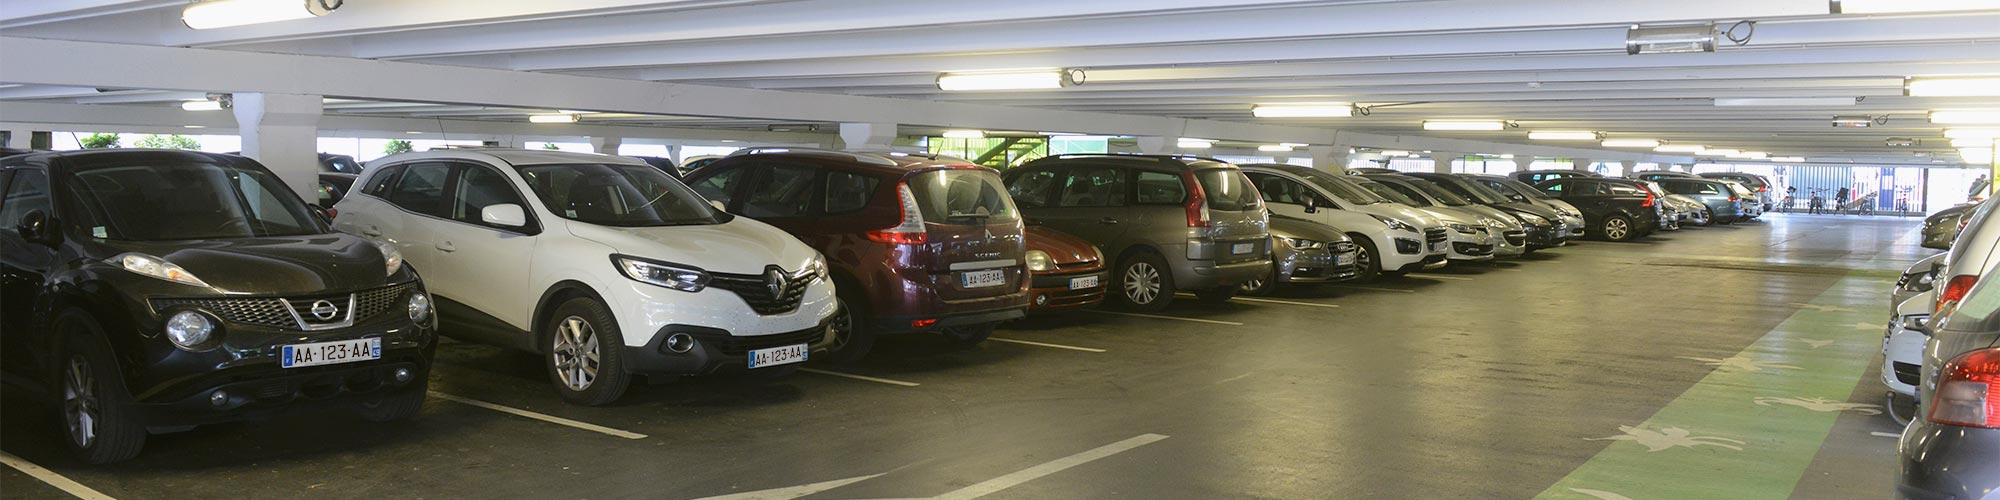 Parking Marengo Angers